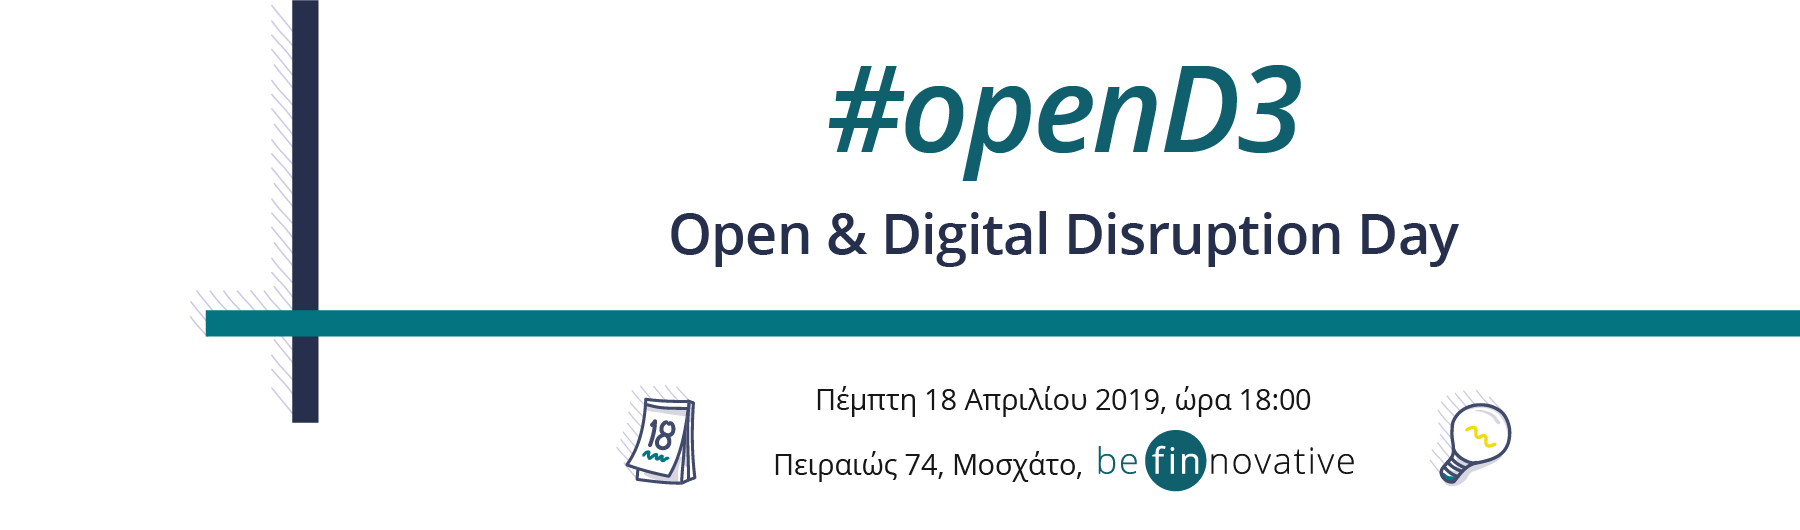 Open Digital Disruption Day - #openD3 2019